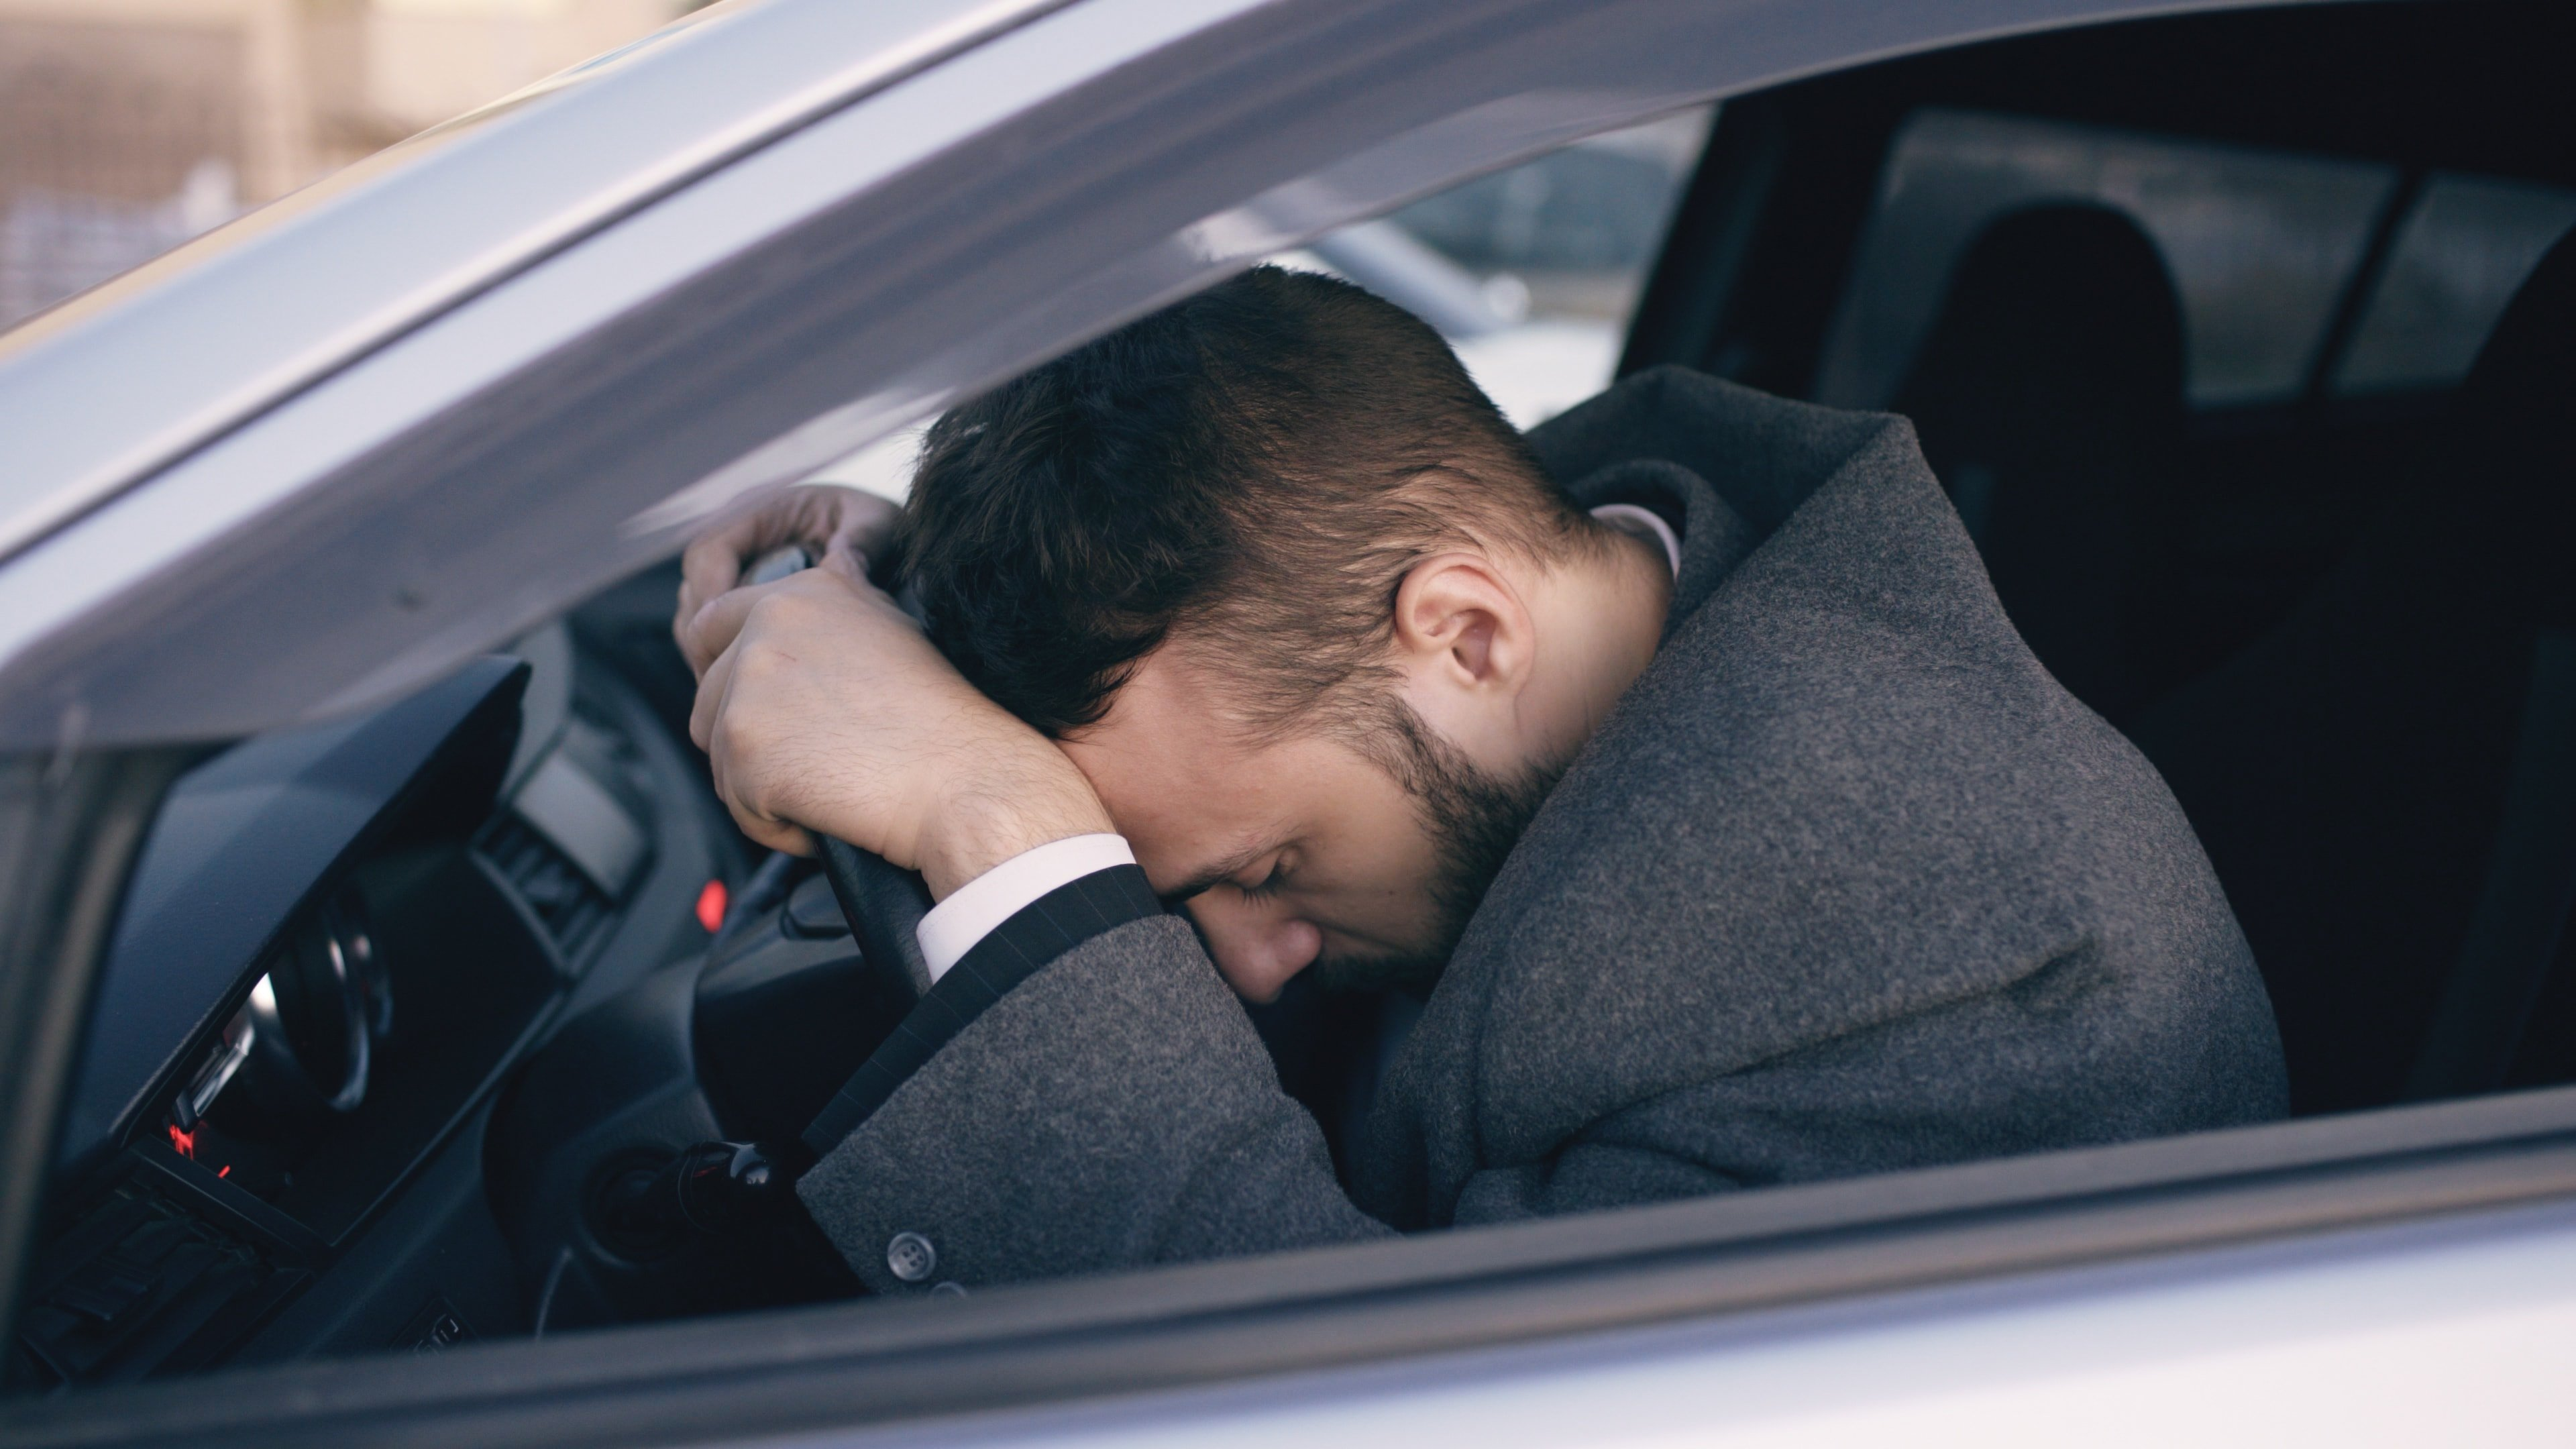 do you know how many accidents are caused by fatigue